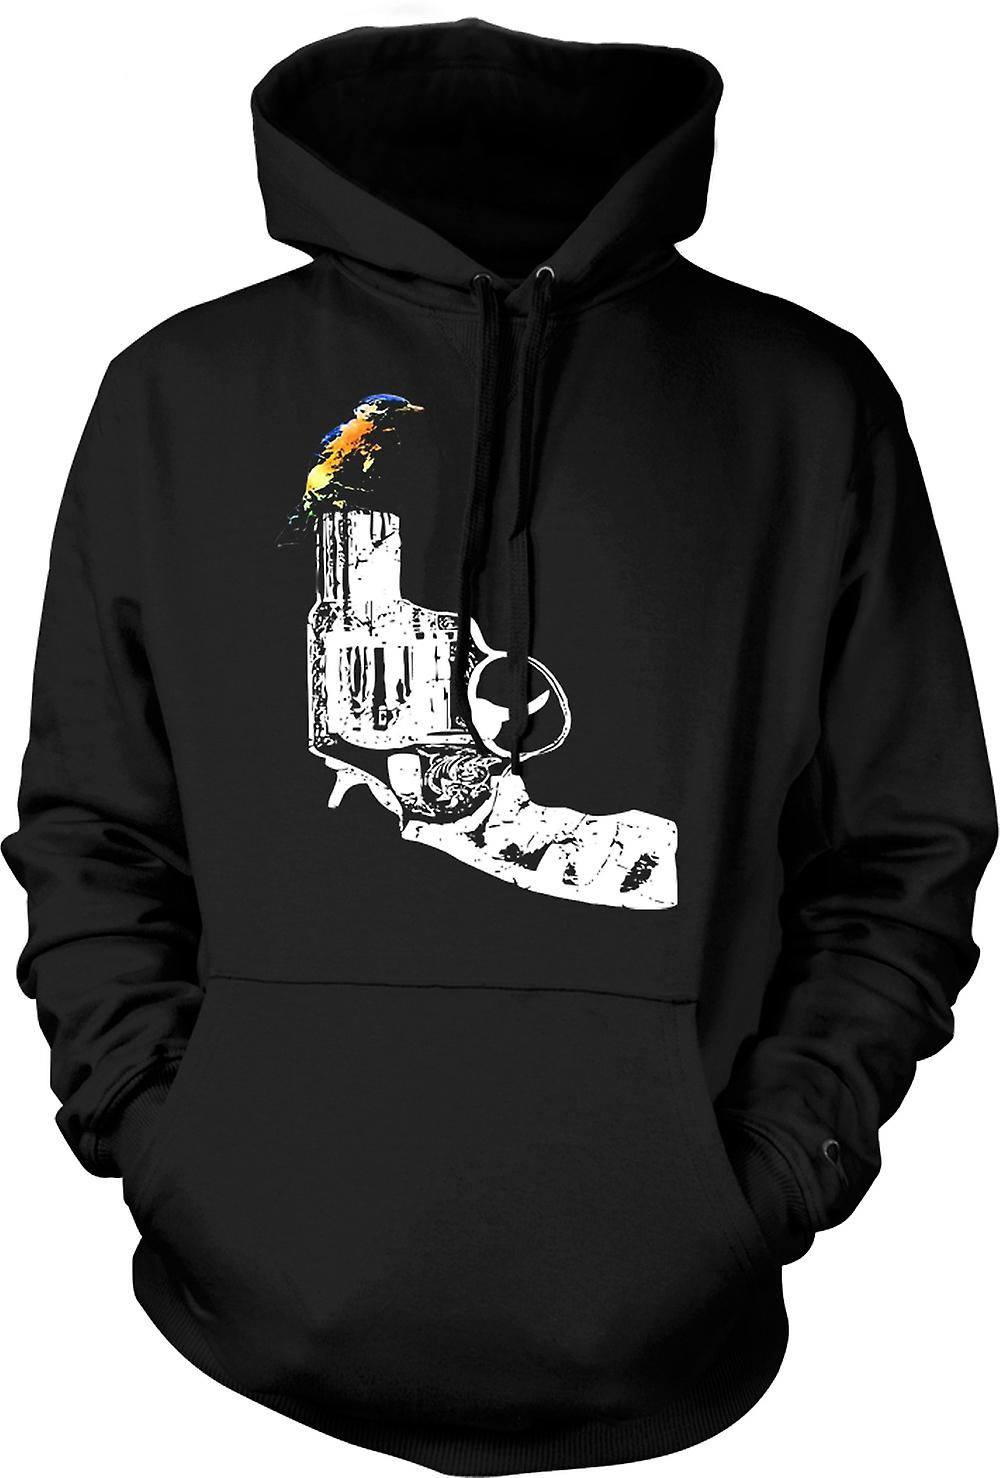 Kids Hoodie - Kingfisher On Pistol - Cool Gun Design